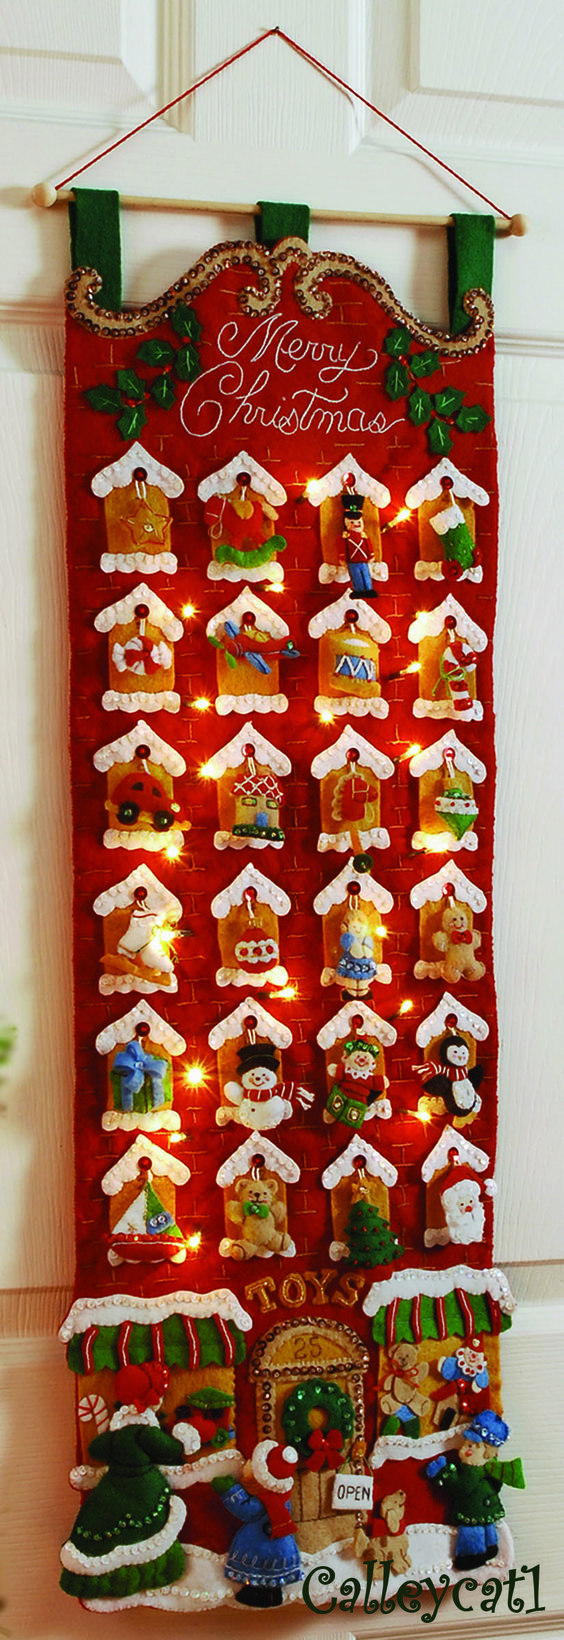 Advent calender, it lights up. Love that: